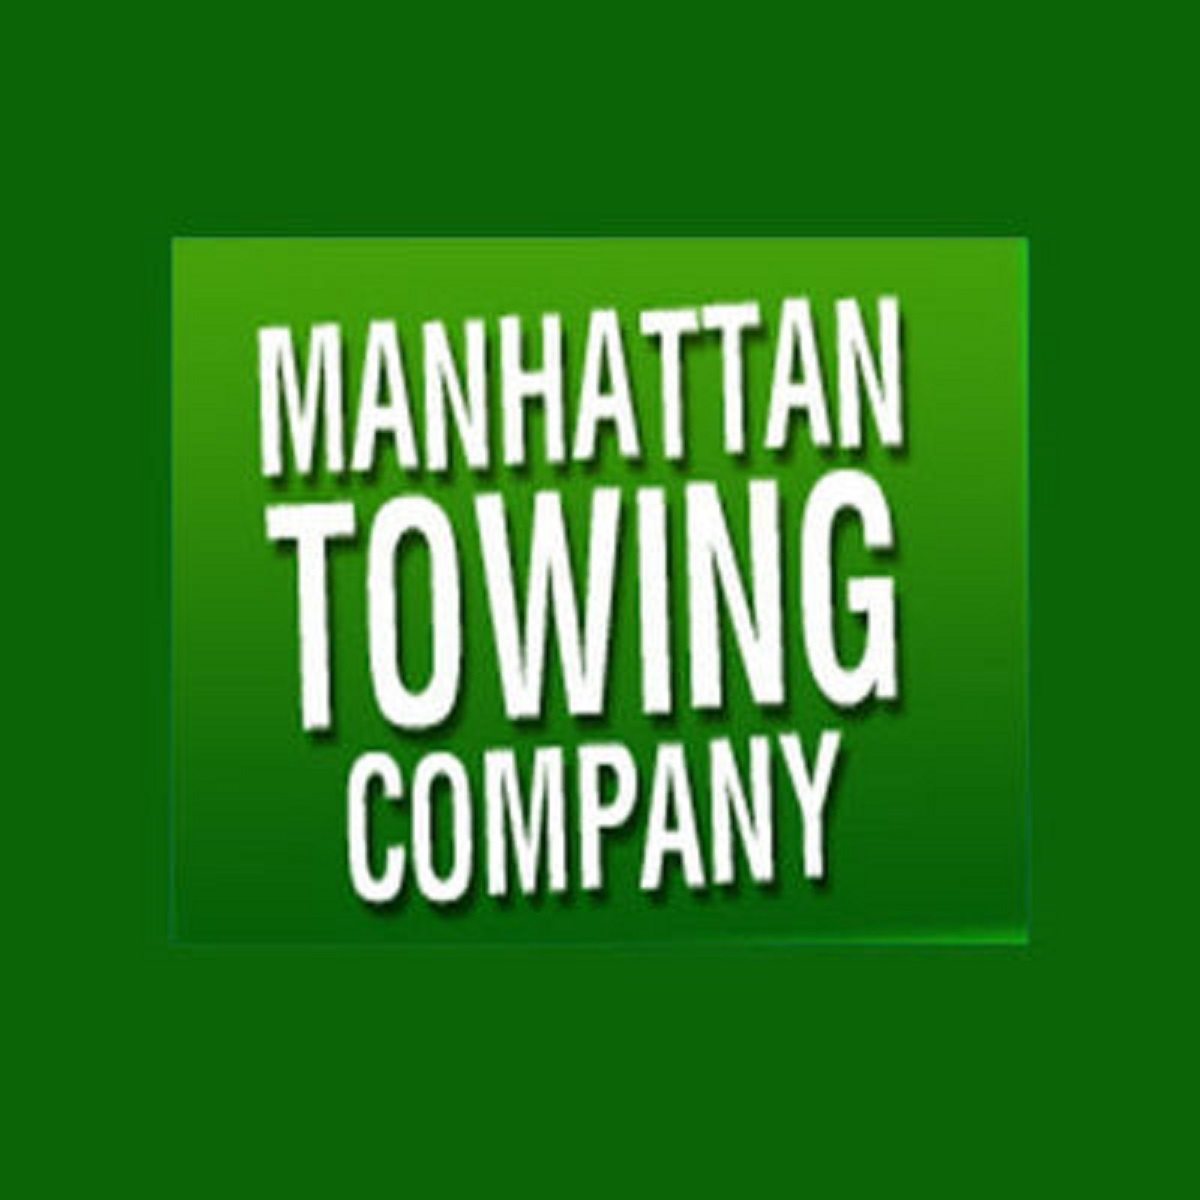 (@companytowing3) Cover Image